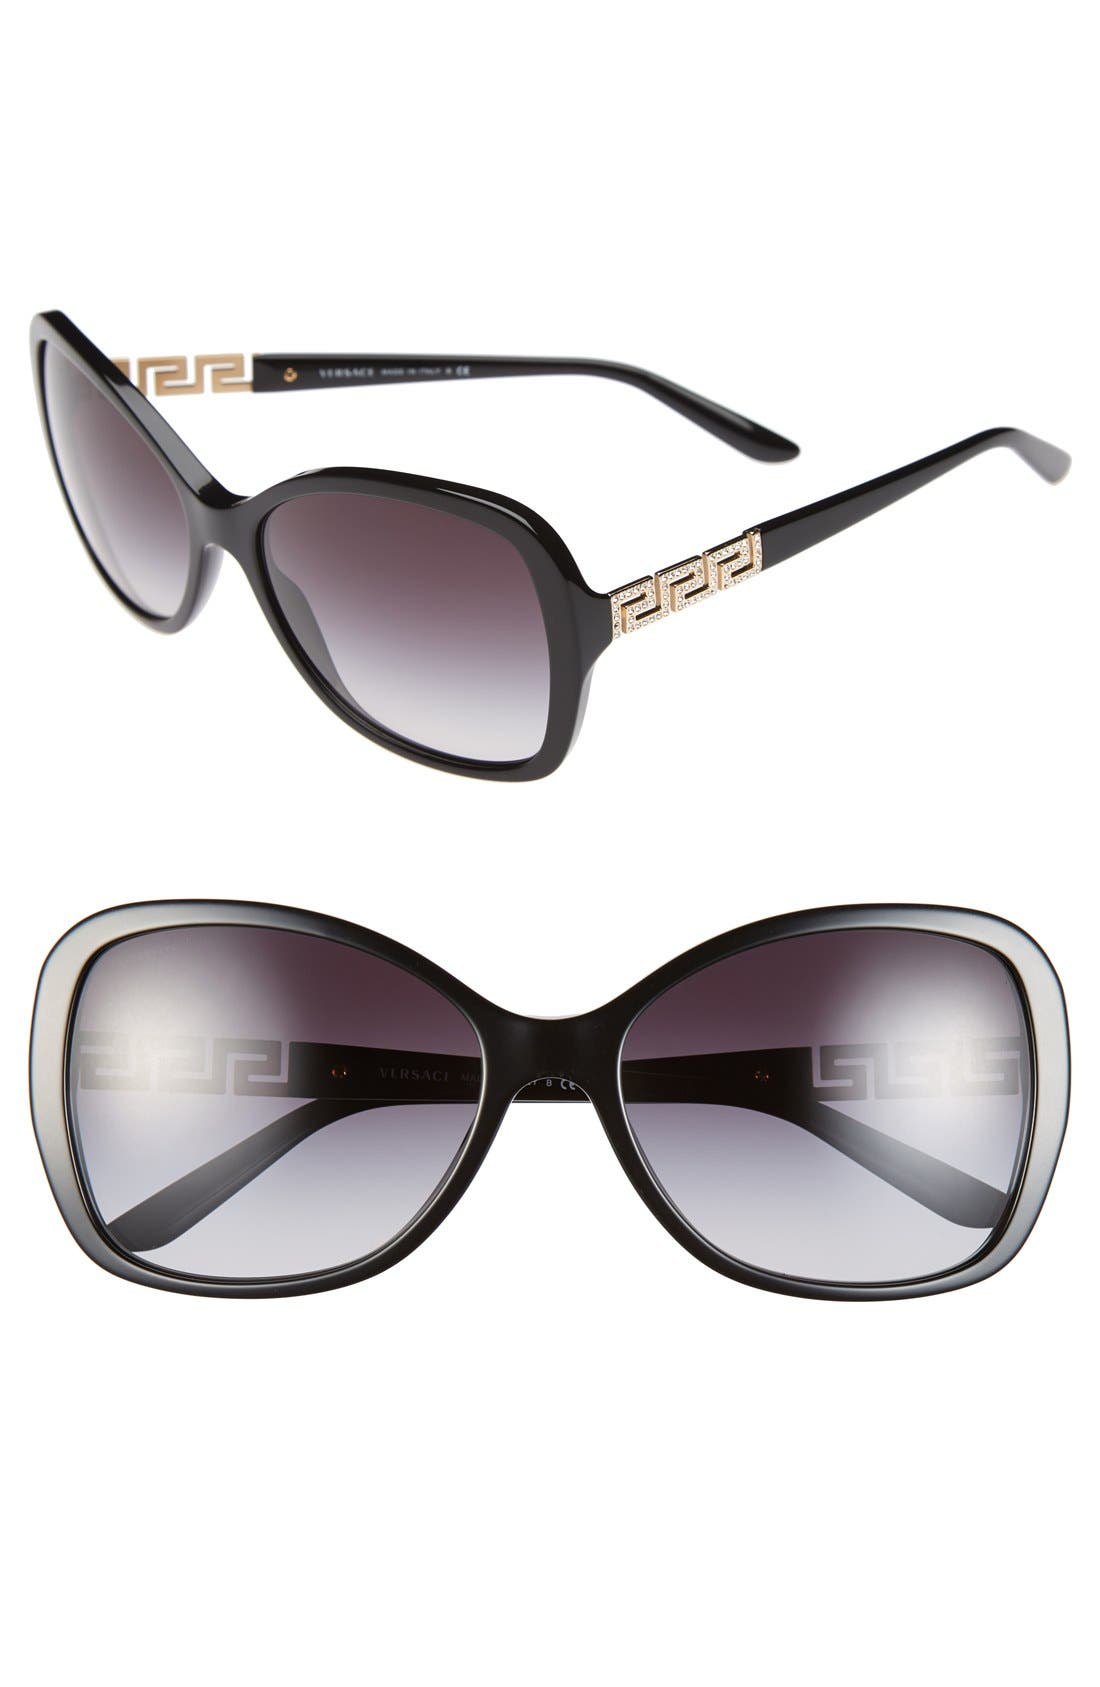 58mm Butterfly Sunglasses,                             Main thumbnail 1, color,                             Black